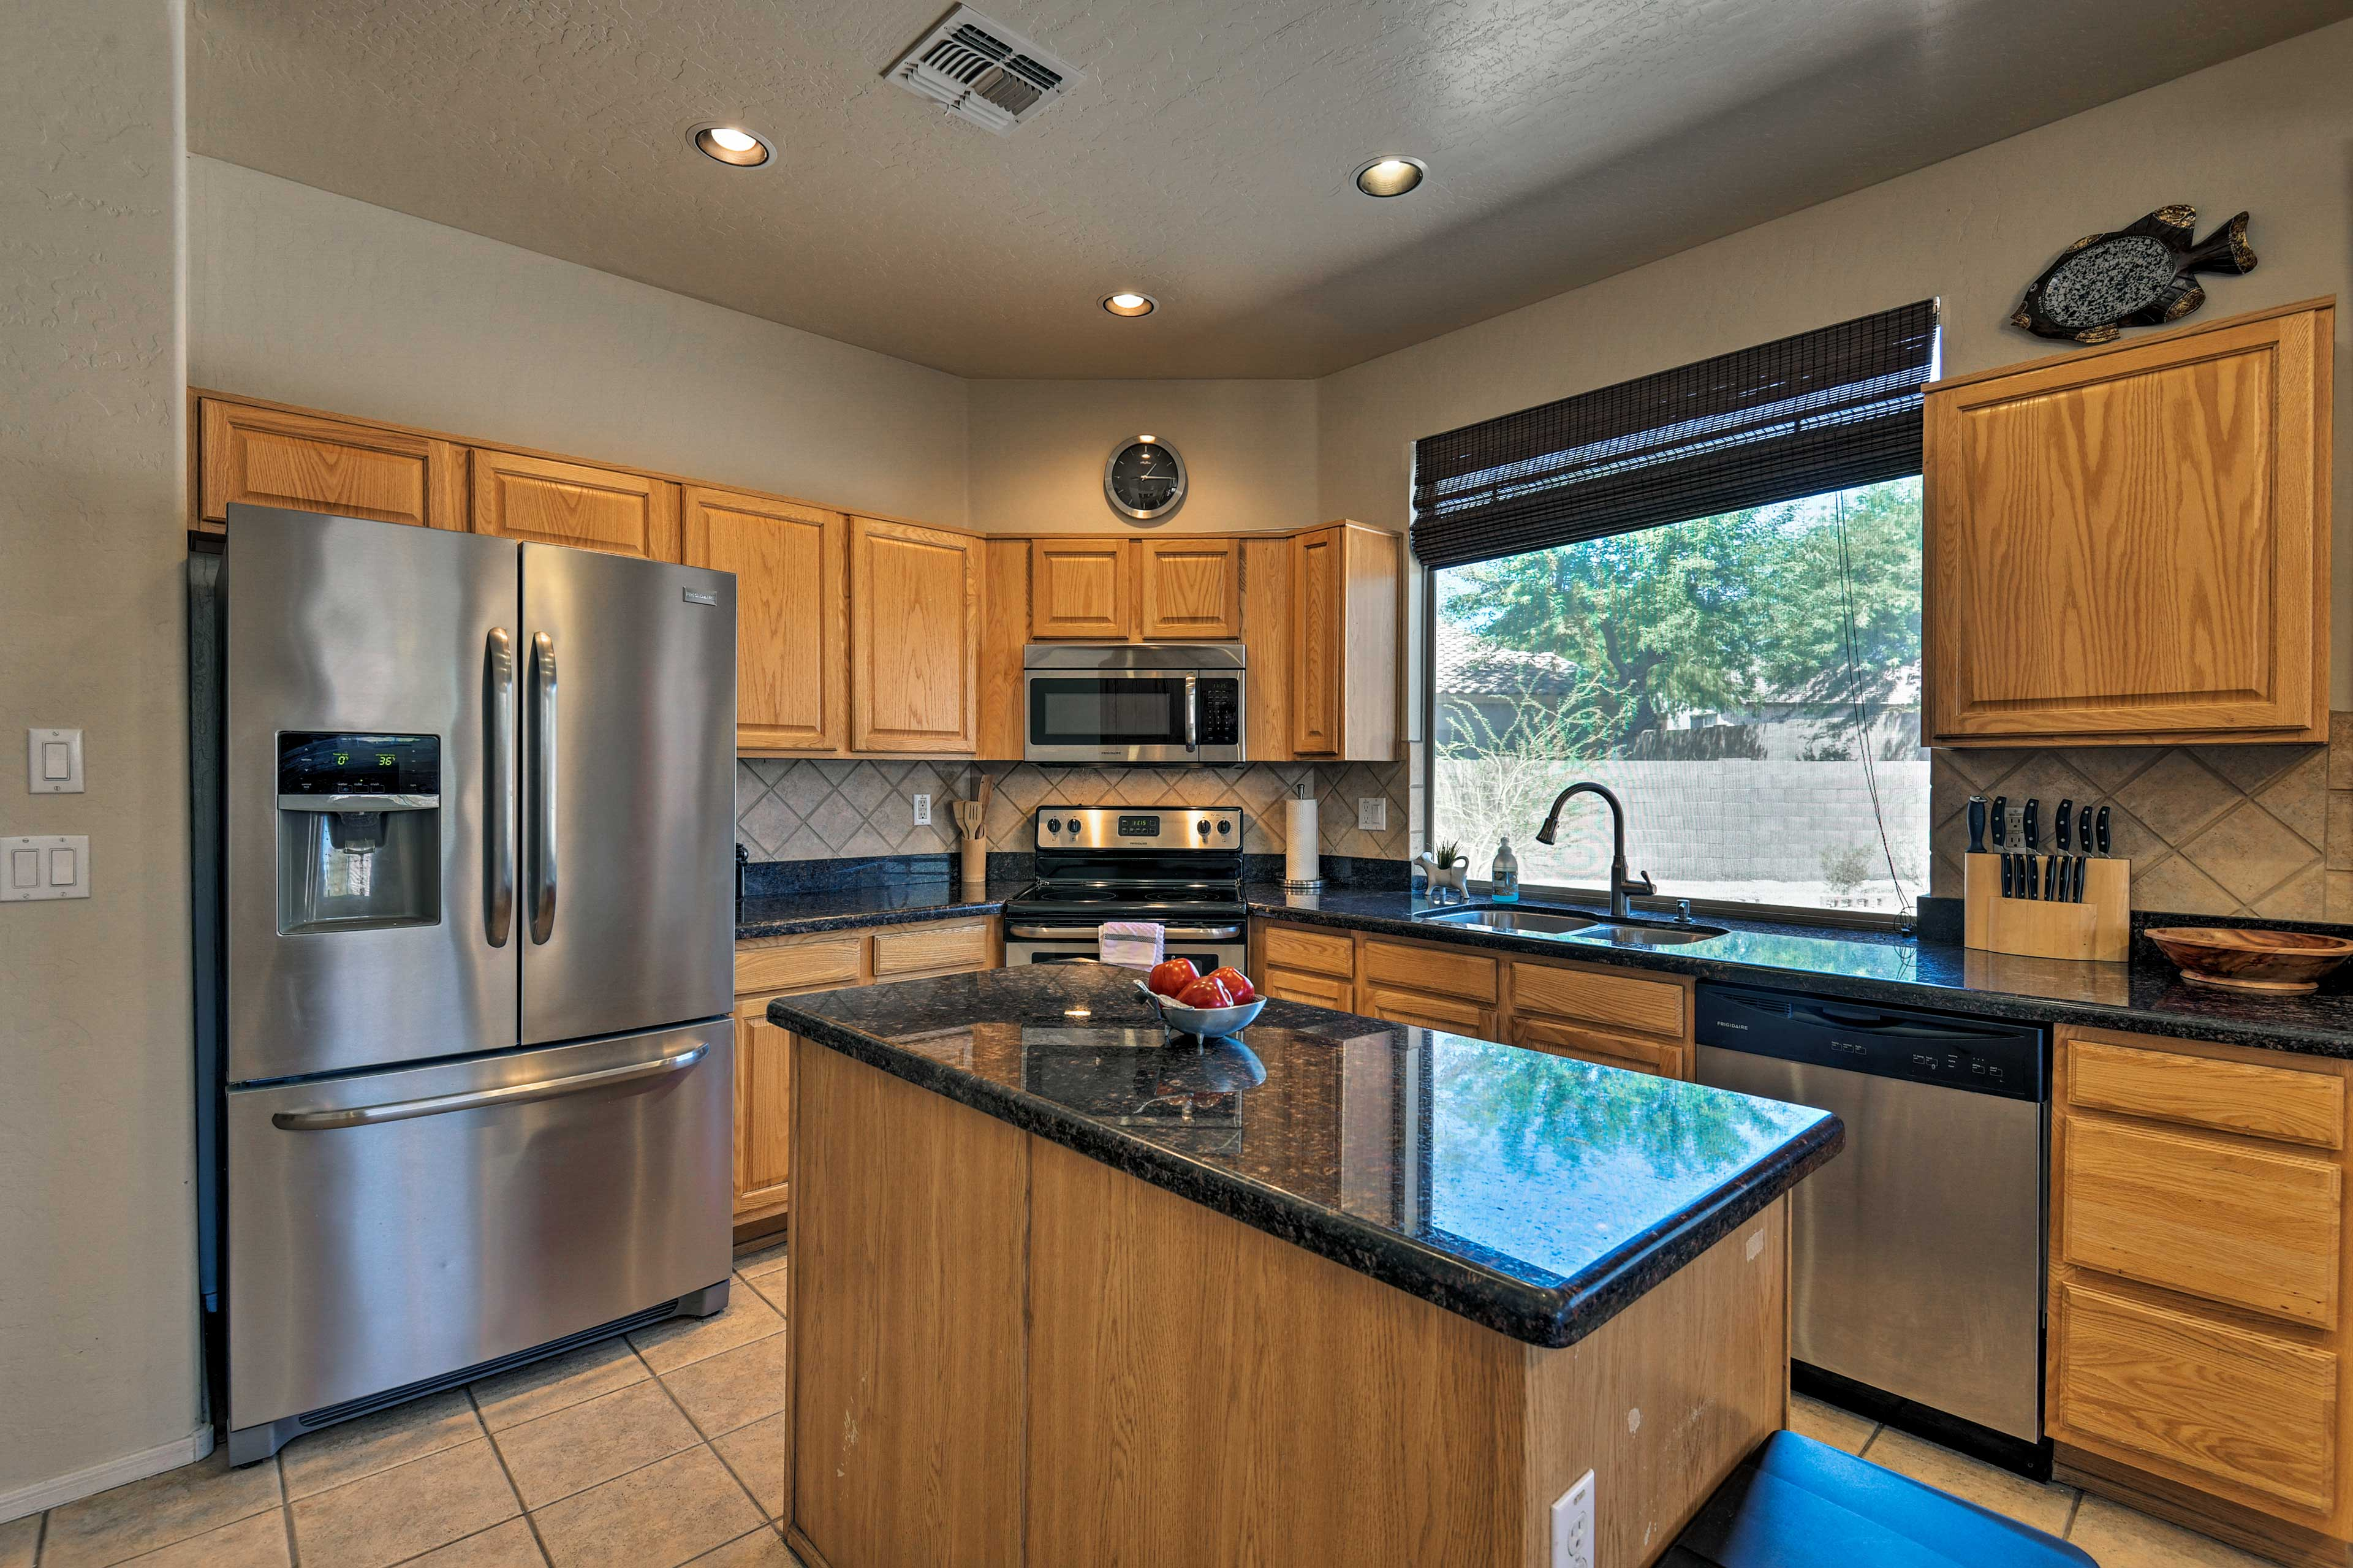 You'll have access to stainless steel appliances and a large kitchen island.